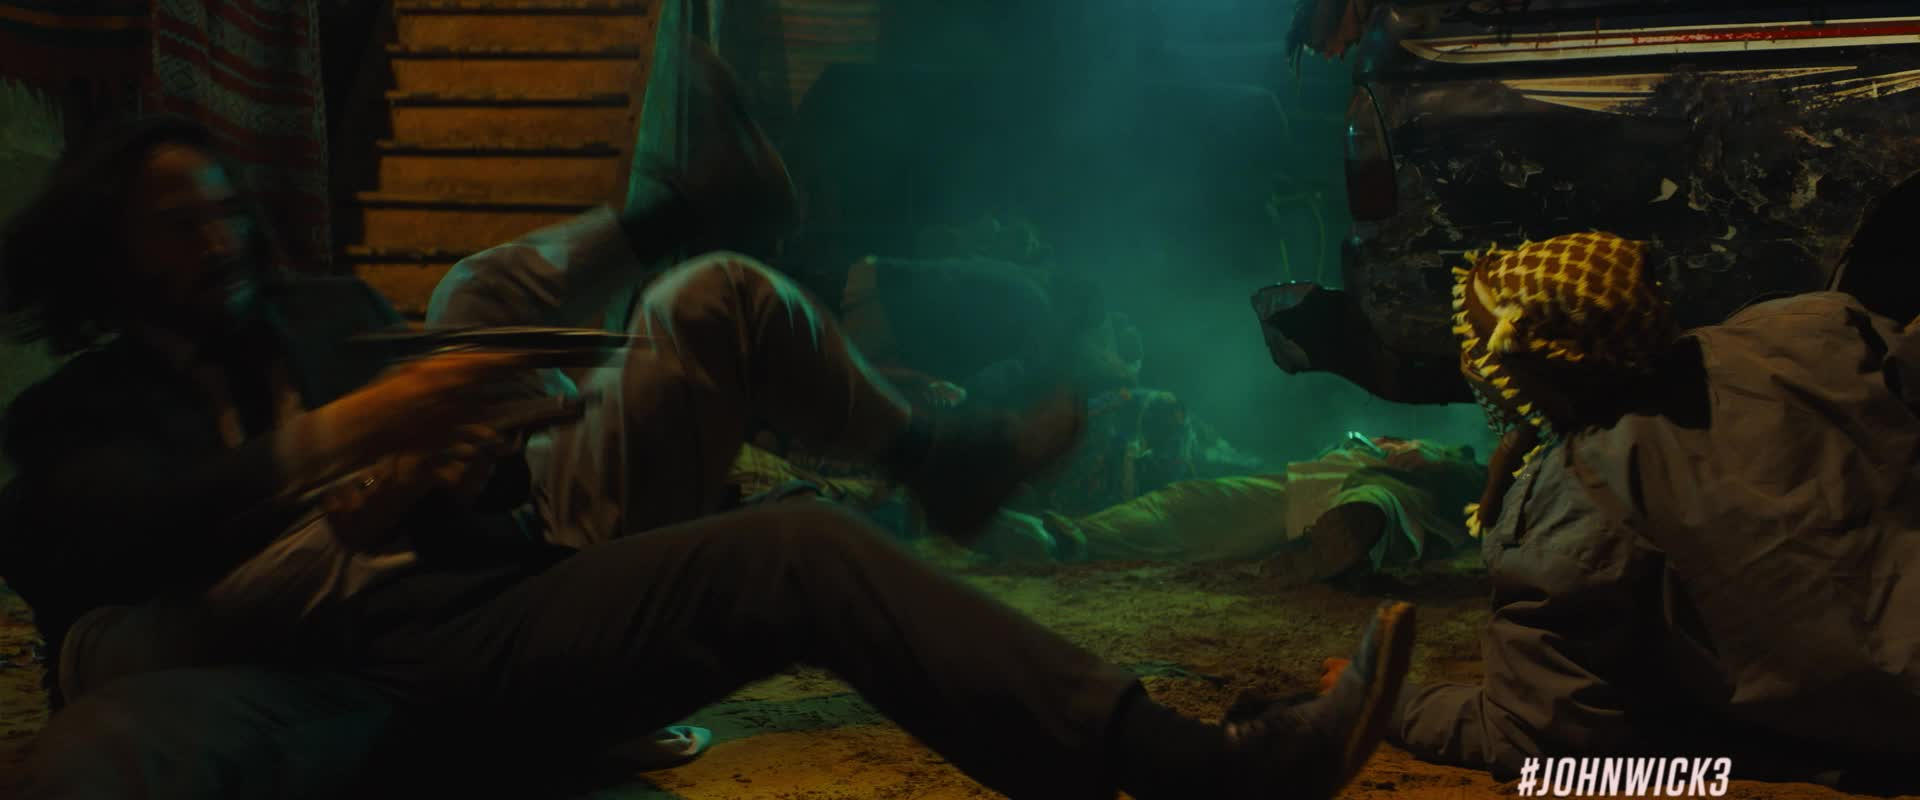 empty gun, fight, guns, john wick, john wick 3, john wick chapter 3, john wick chapter 3 parabellum, keanu reeves, reload, shooting, John Wick Empty Gun Reload GIFs